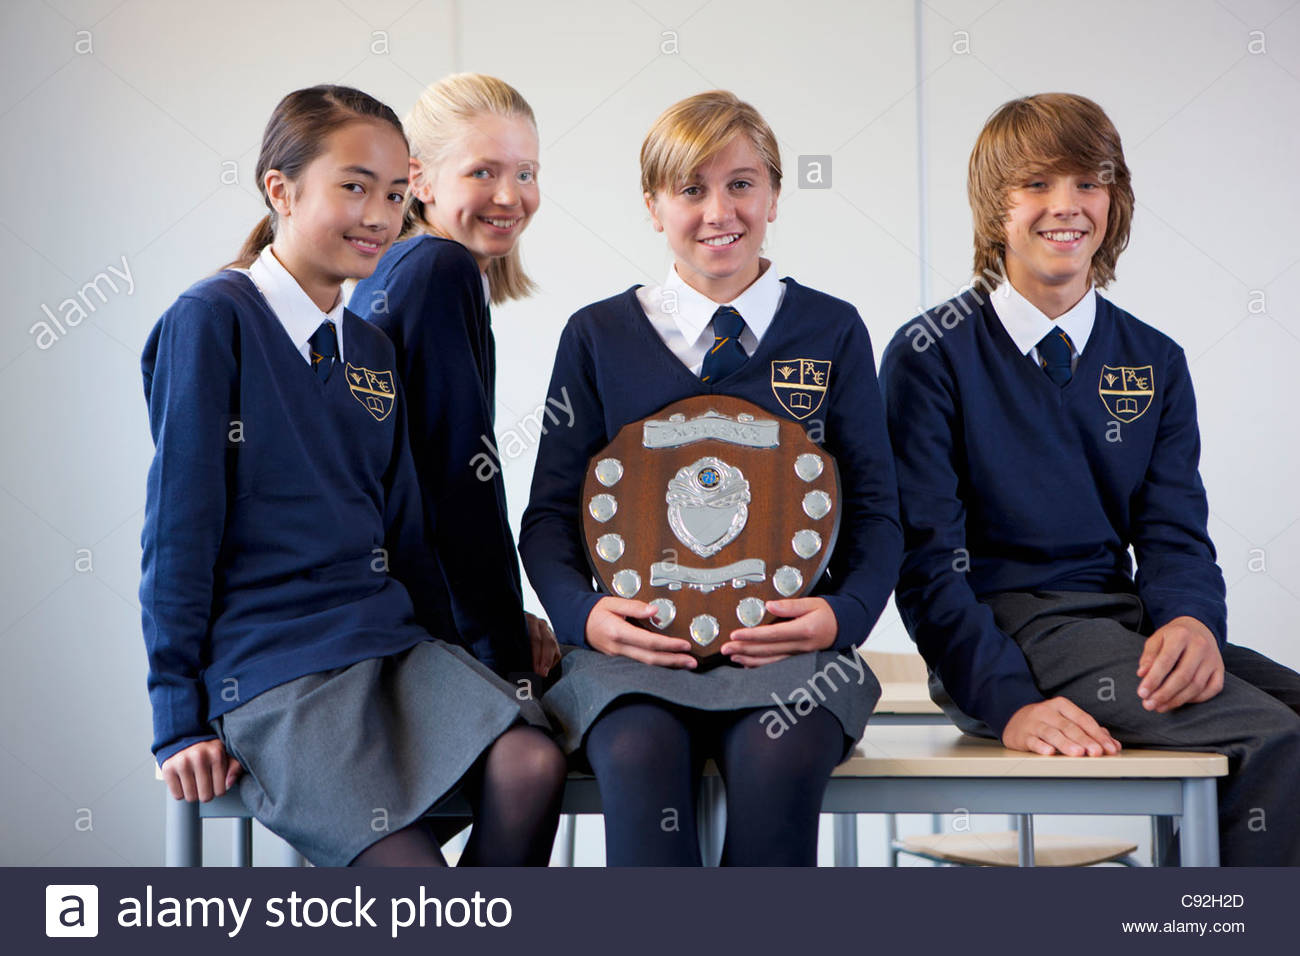 Portrait of smiling students in school uniforms holding award plaque - Stock Image